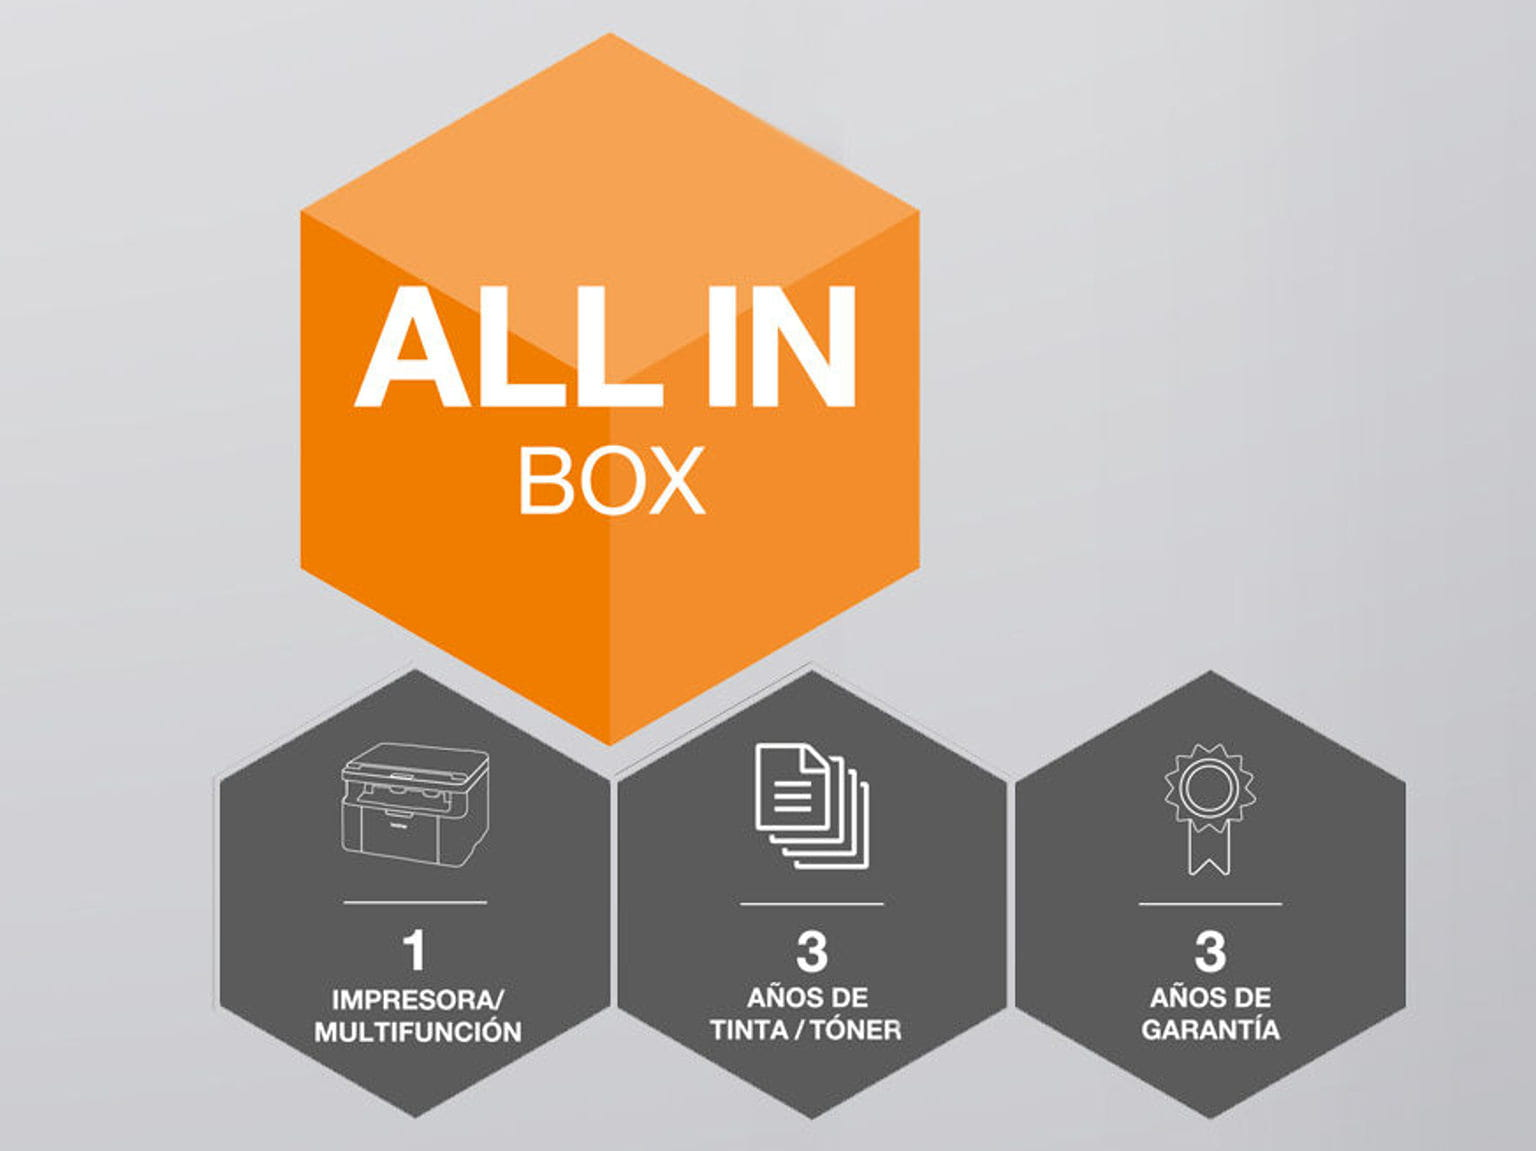 All in box